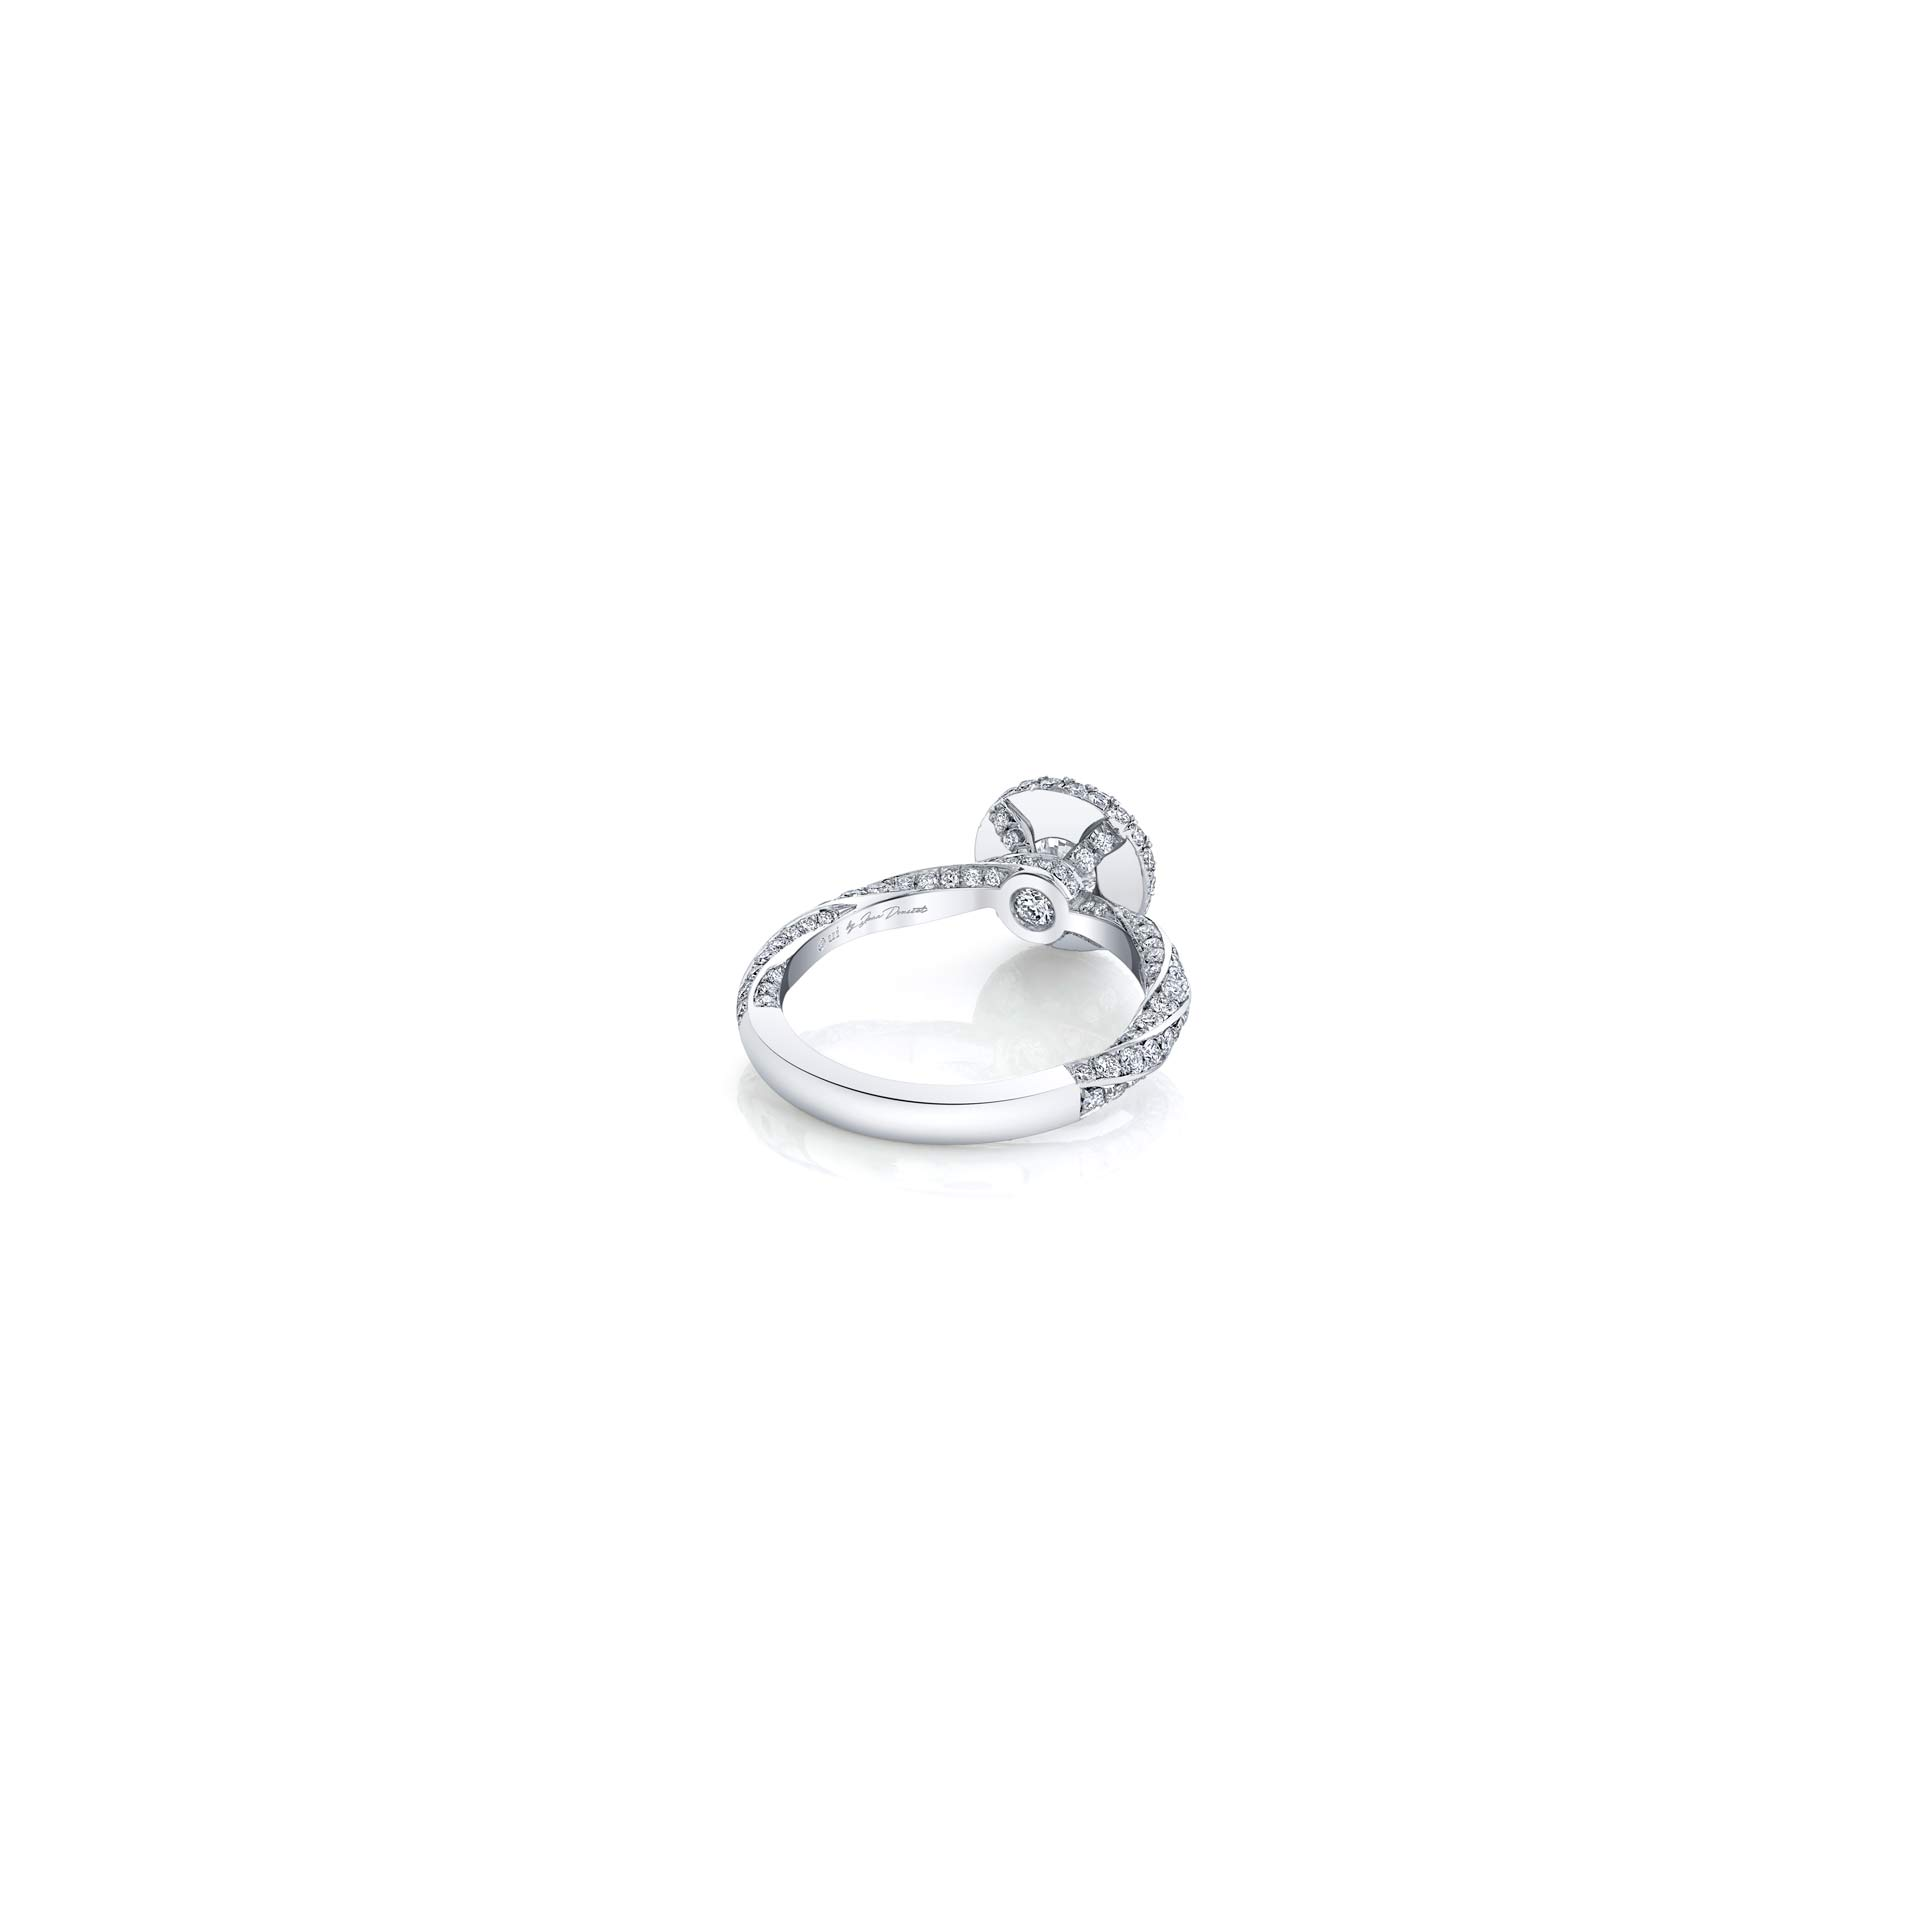 Camille Round Brilliant Seamless Halo® Engagement Ring with diamond pavé in 18k White Gold Back View by Oui by Jean Dousset